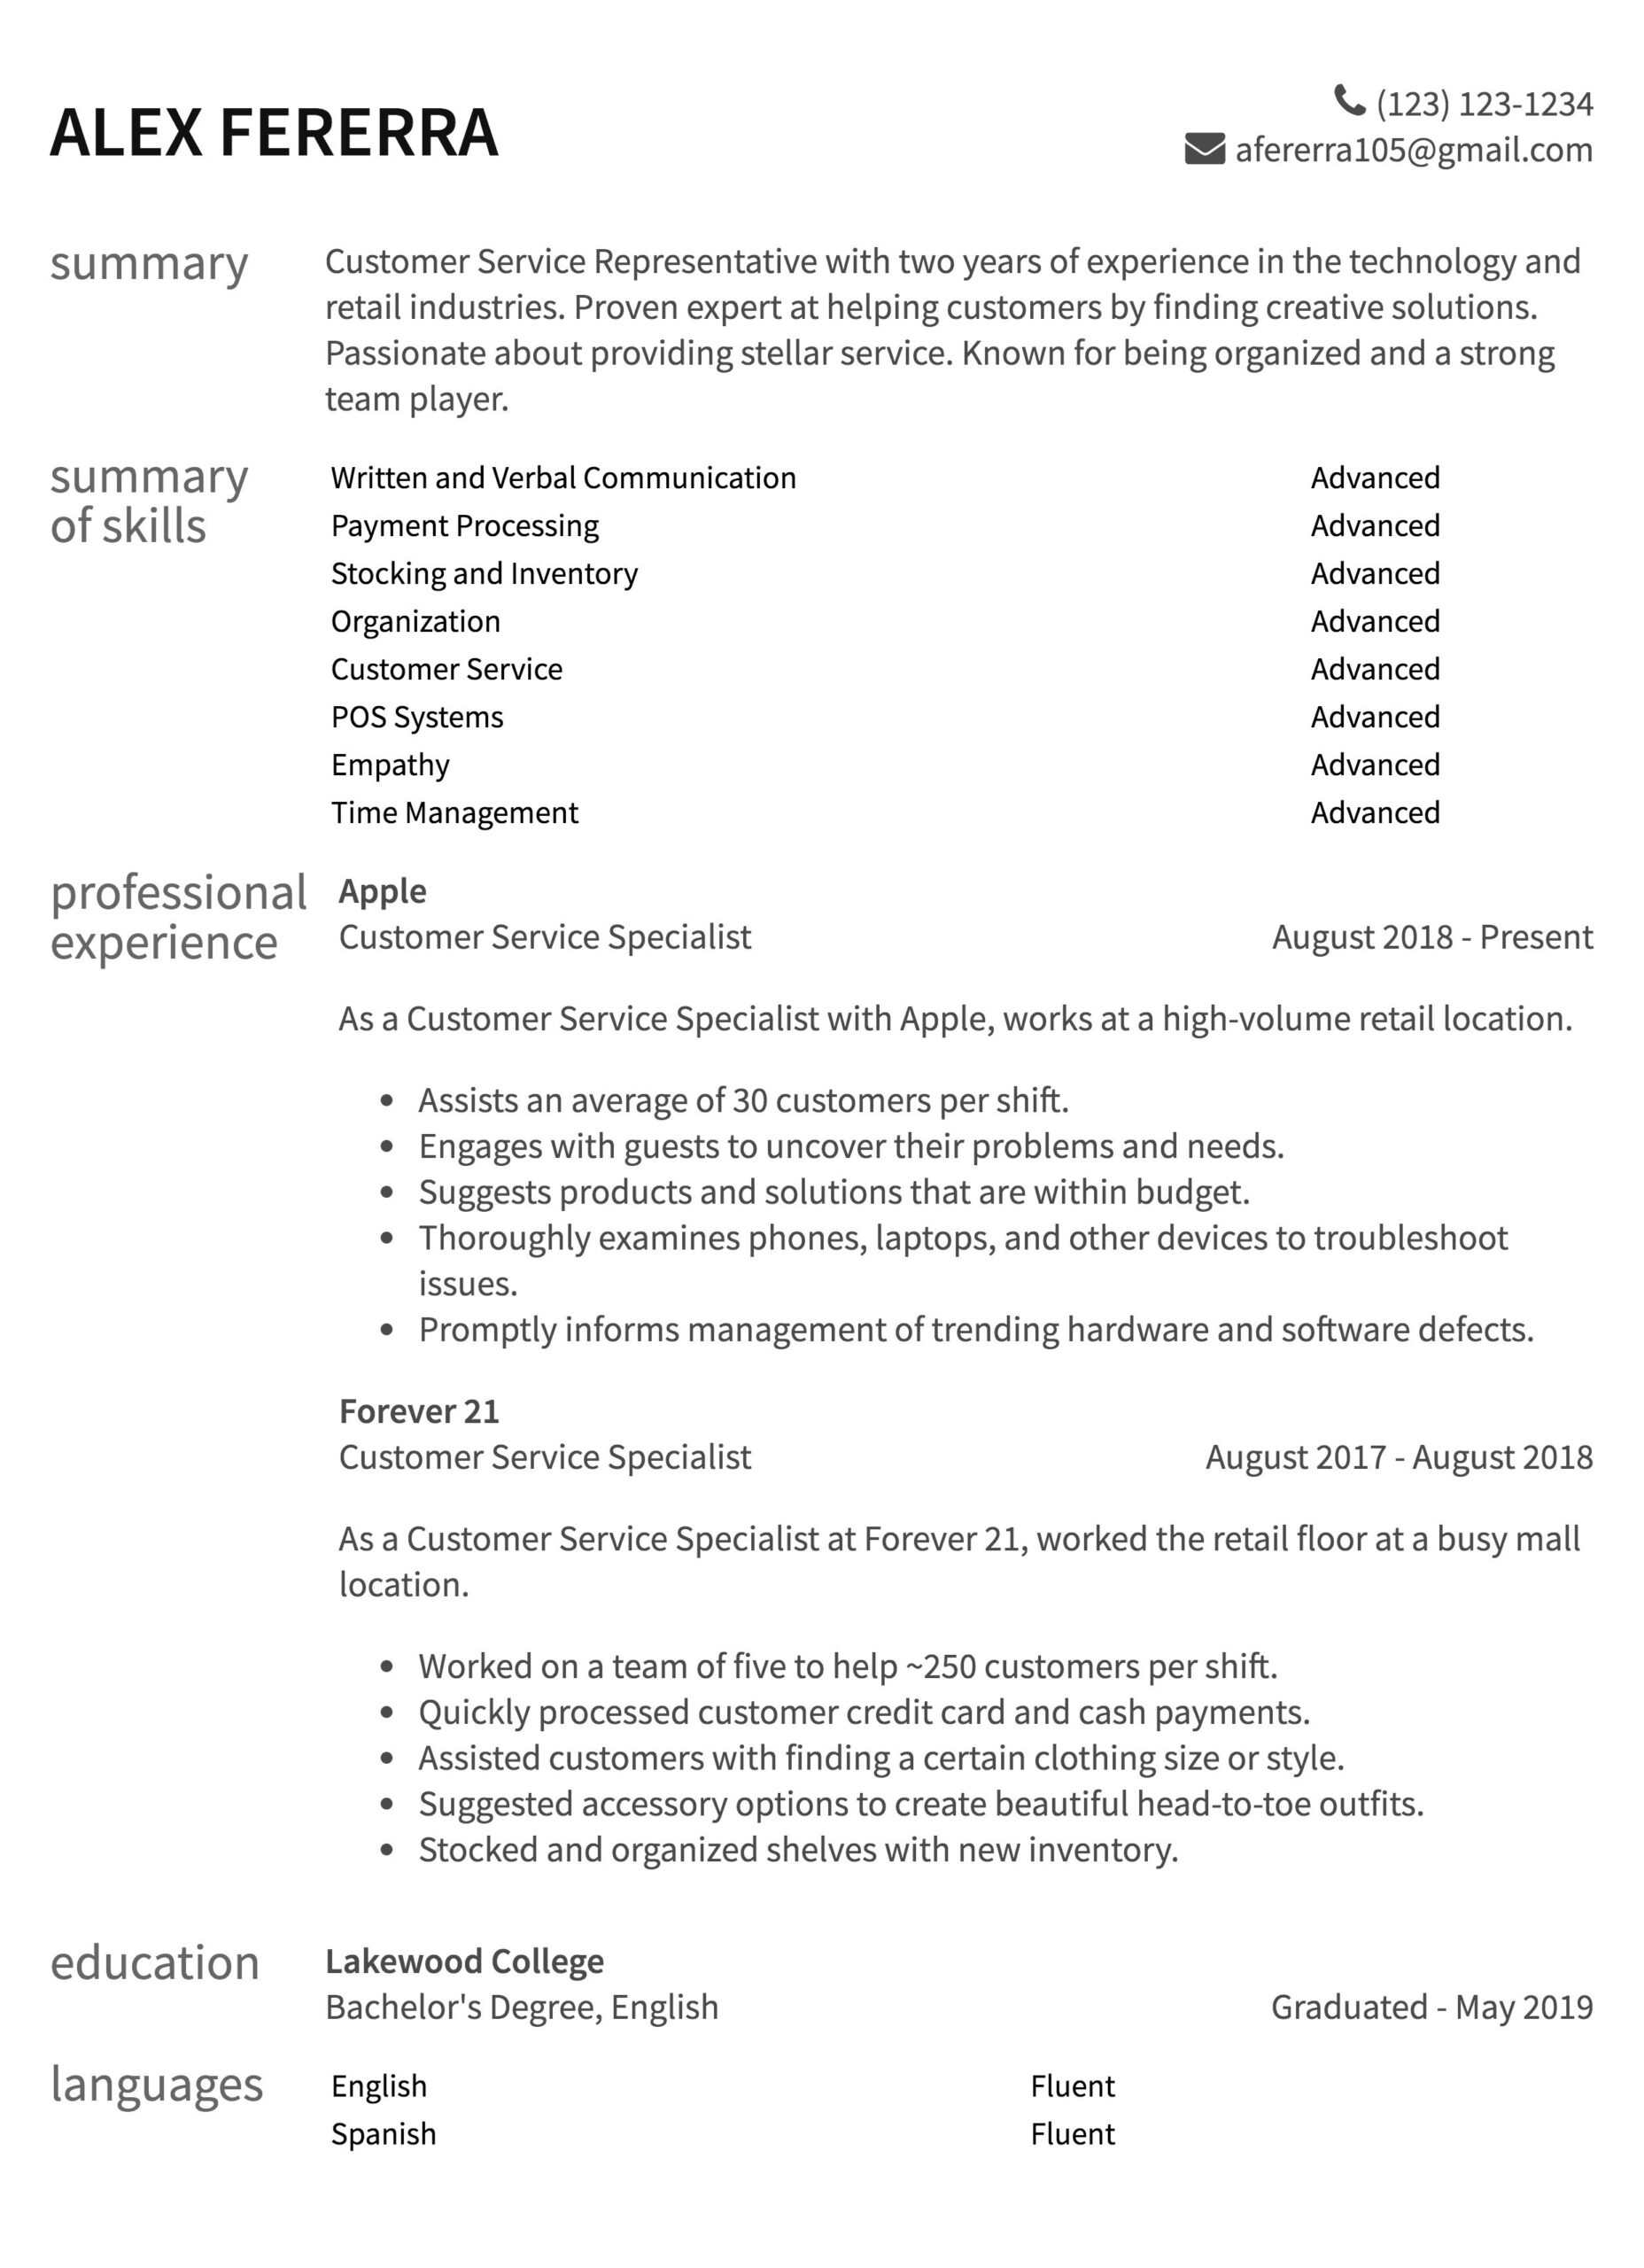 customer service resume samples to guide phone number on format two year exp sample for Resume Phone Number On Resume Format